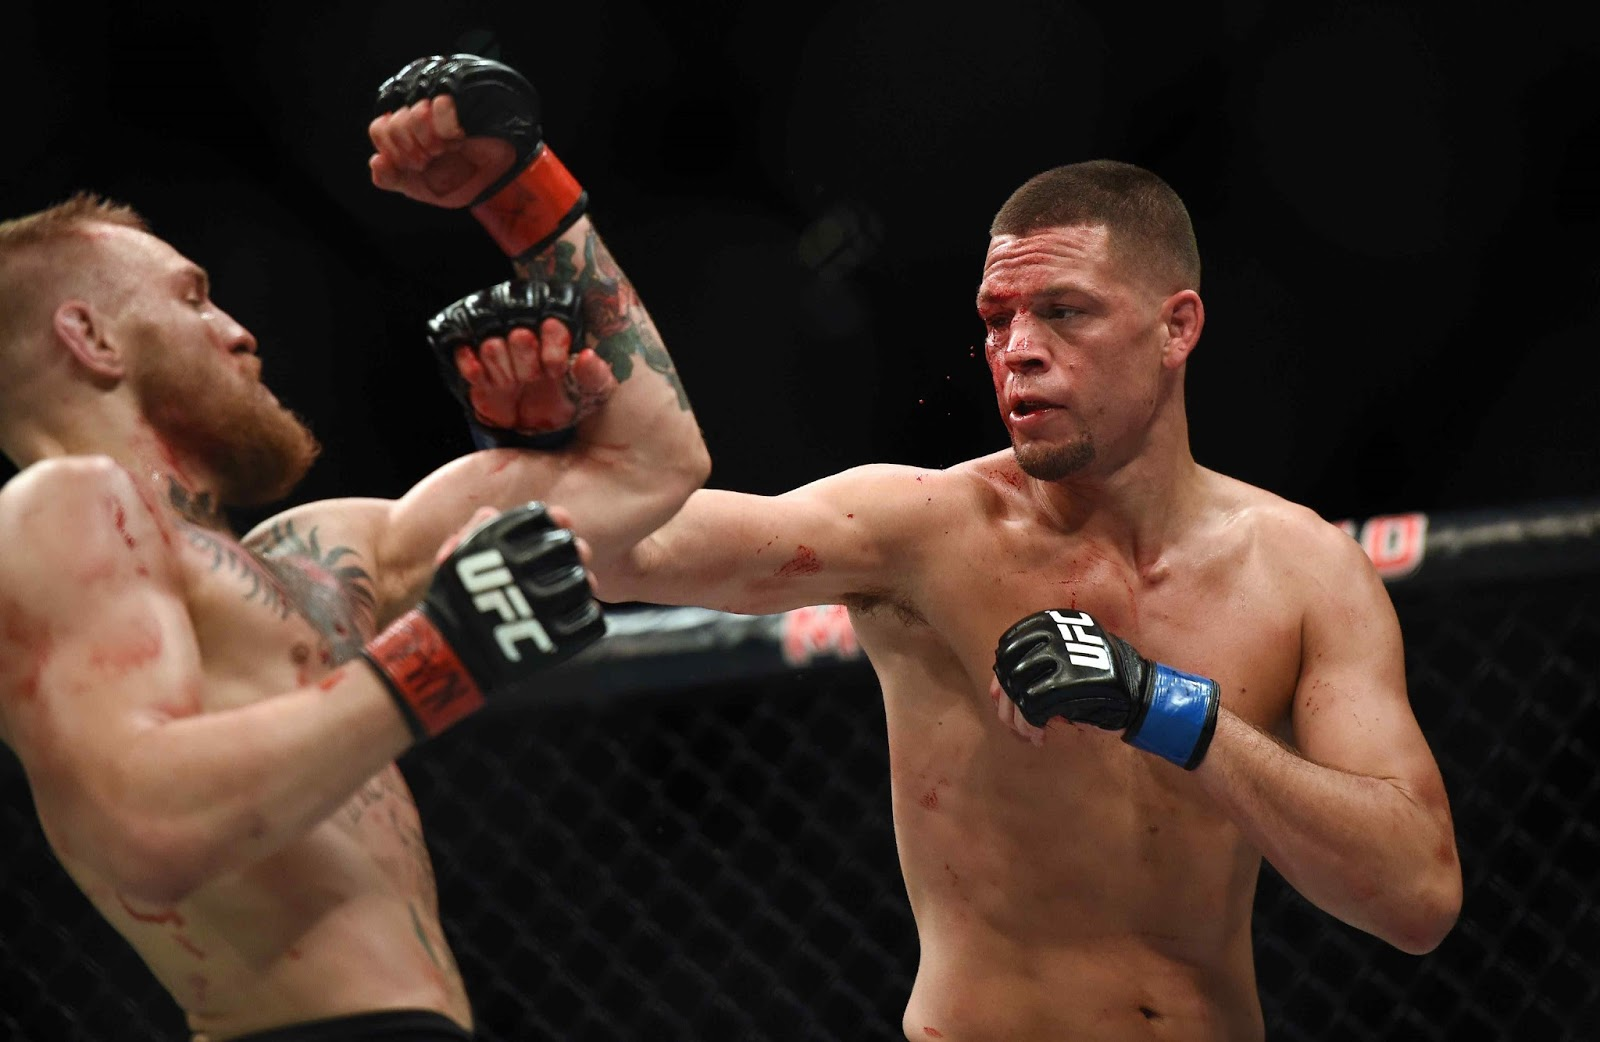 CONOR MCGREGOR VS. NATE DIAZ 11